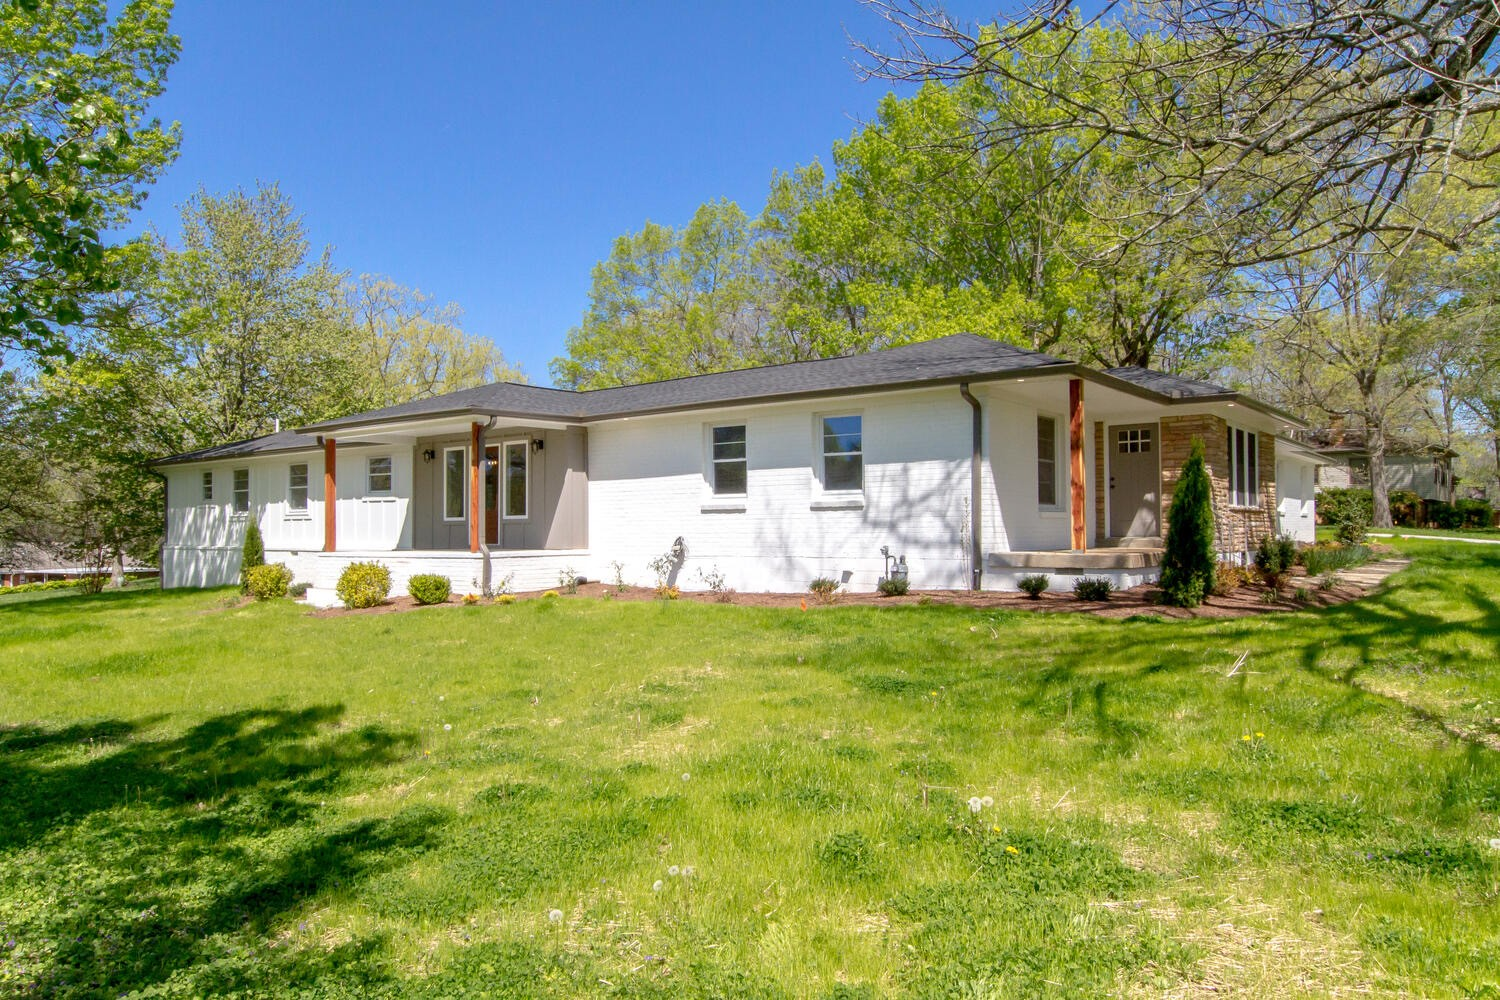 801 N Graycroft Ave Property Photo - Madison, TN real estate listing